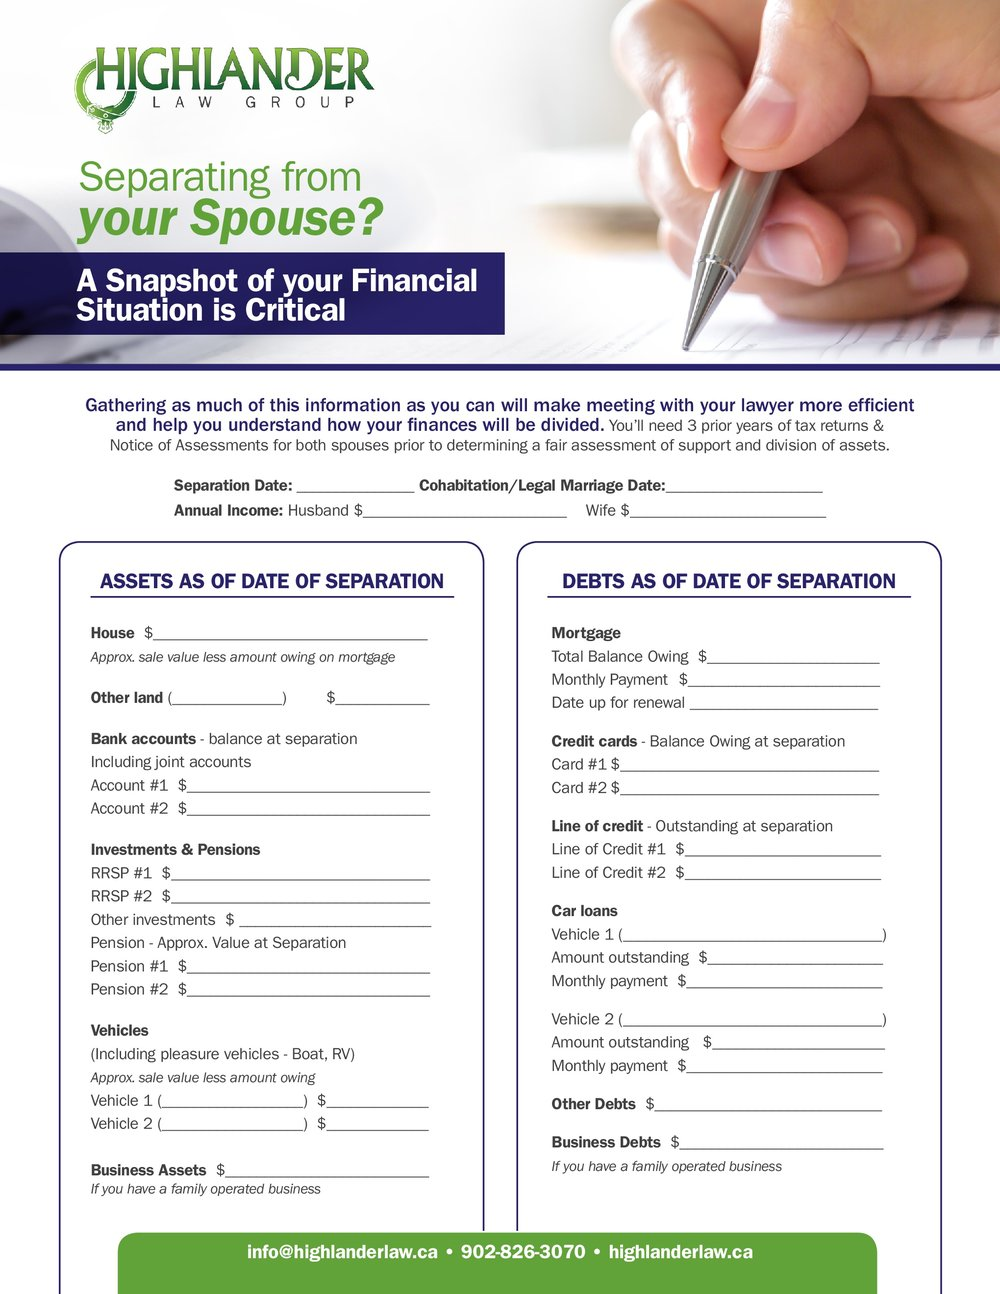 Financial Snapshot checklist preparing to divorce or separate